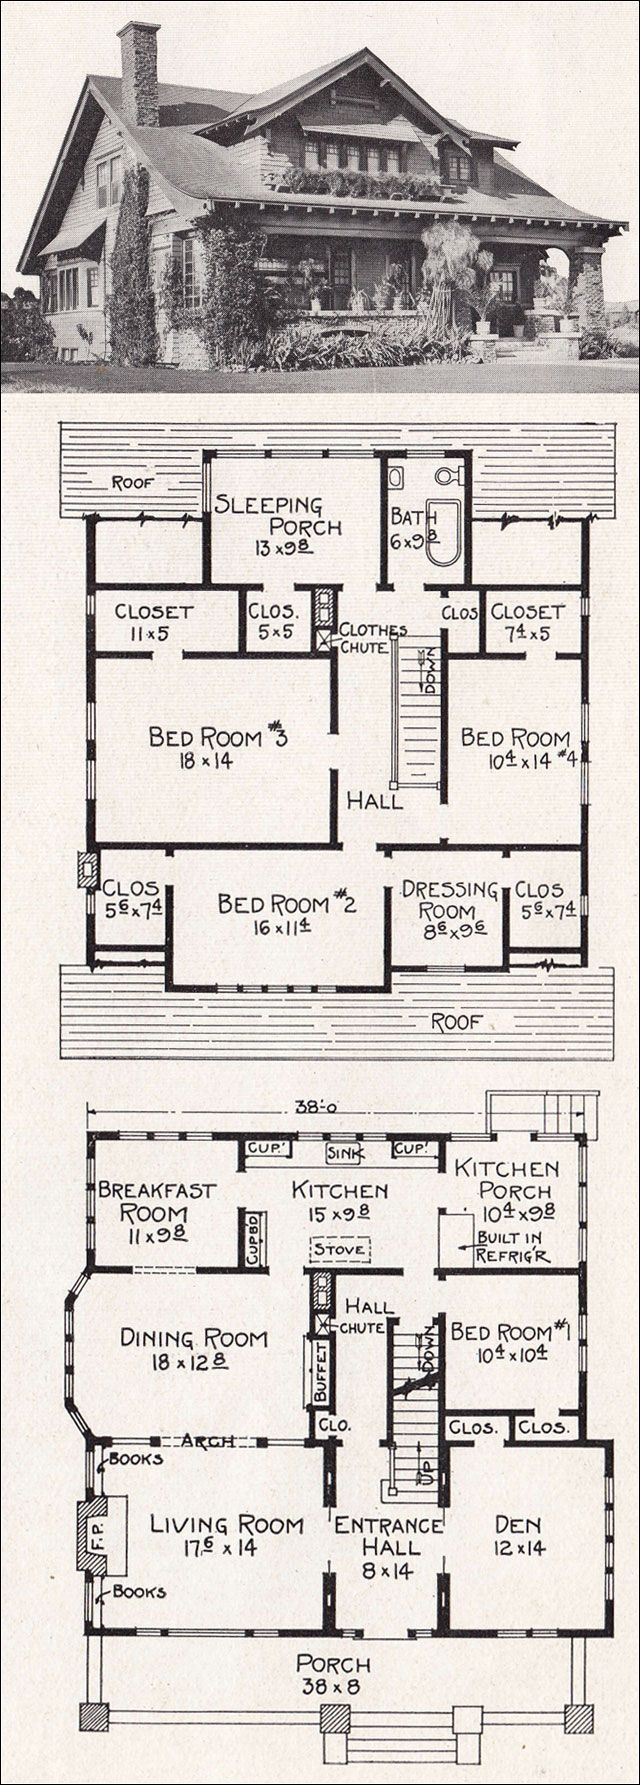 "1918 Bungalow Plan No. R88 by E. W. Stillwel.  ' ""Provision is made for the following conveniences: Bookcases, fireplace, coat closet, kitchen cabinets, buffet, built-in refrigerator, laundry on screen porch, large closets on second floor and clothes chute."" Quite a grand house at about 2500 sf, though it has but a single bathroom.'"